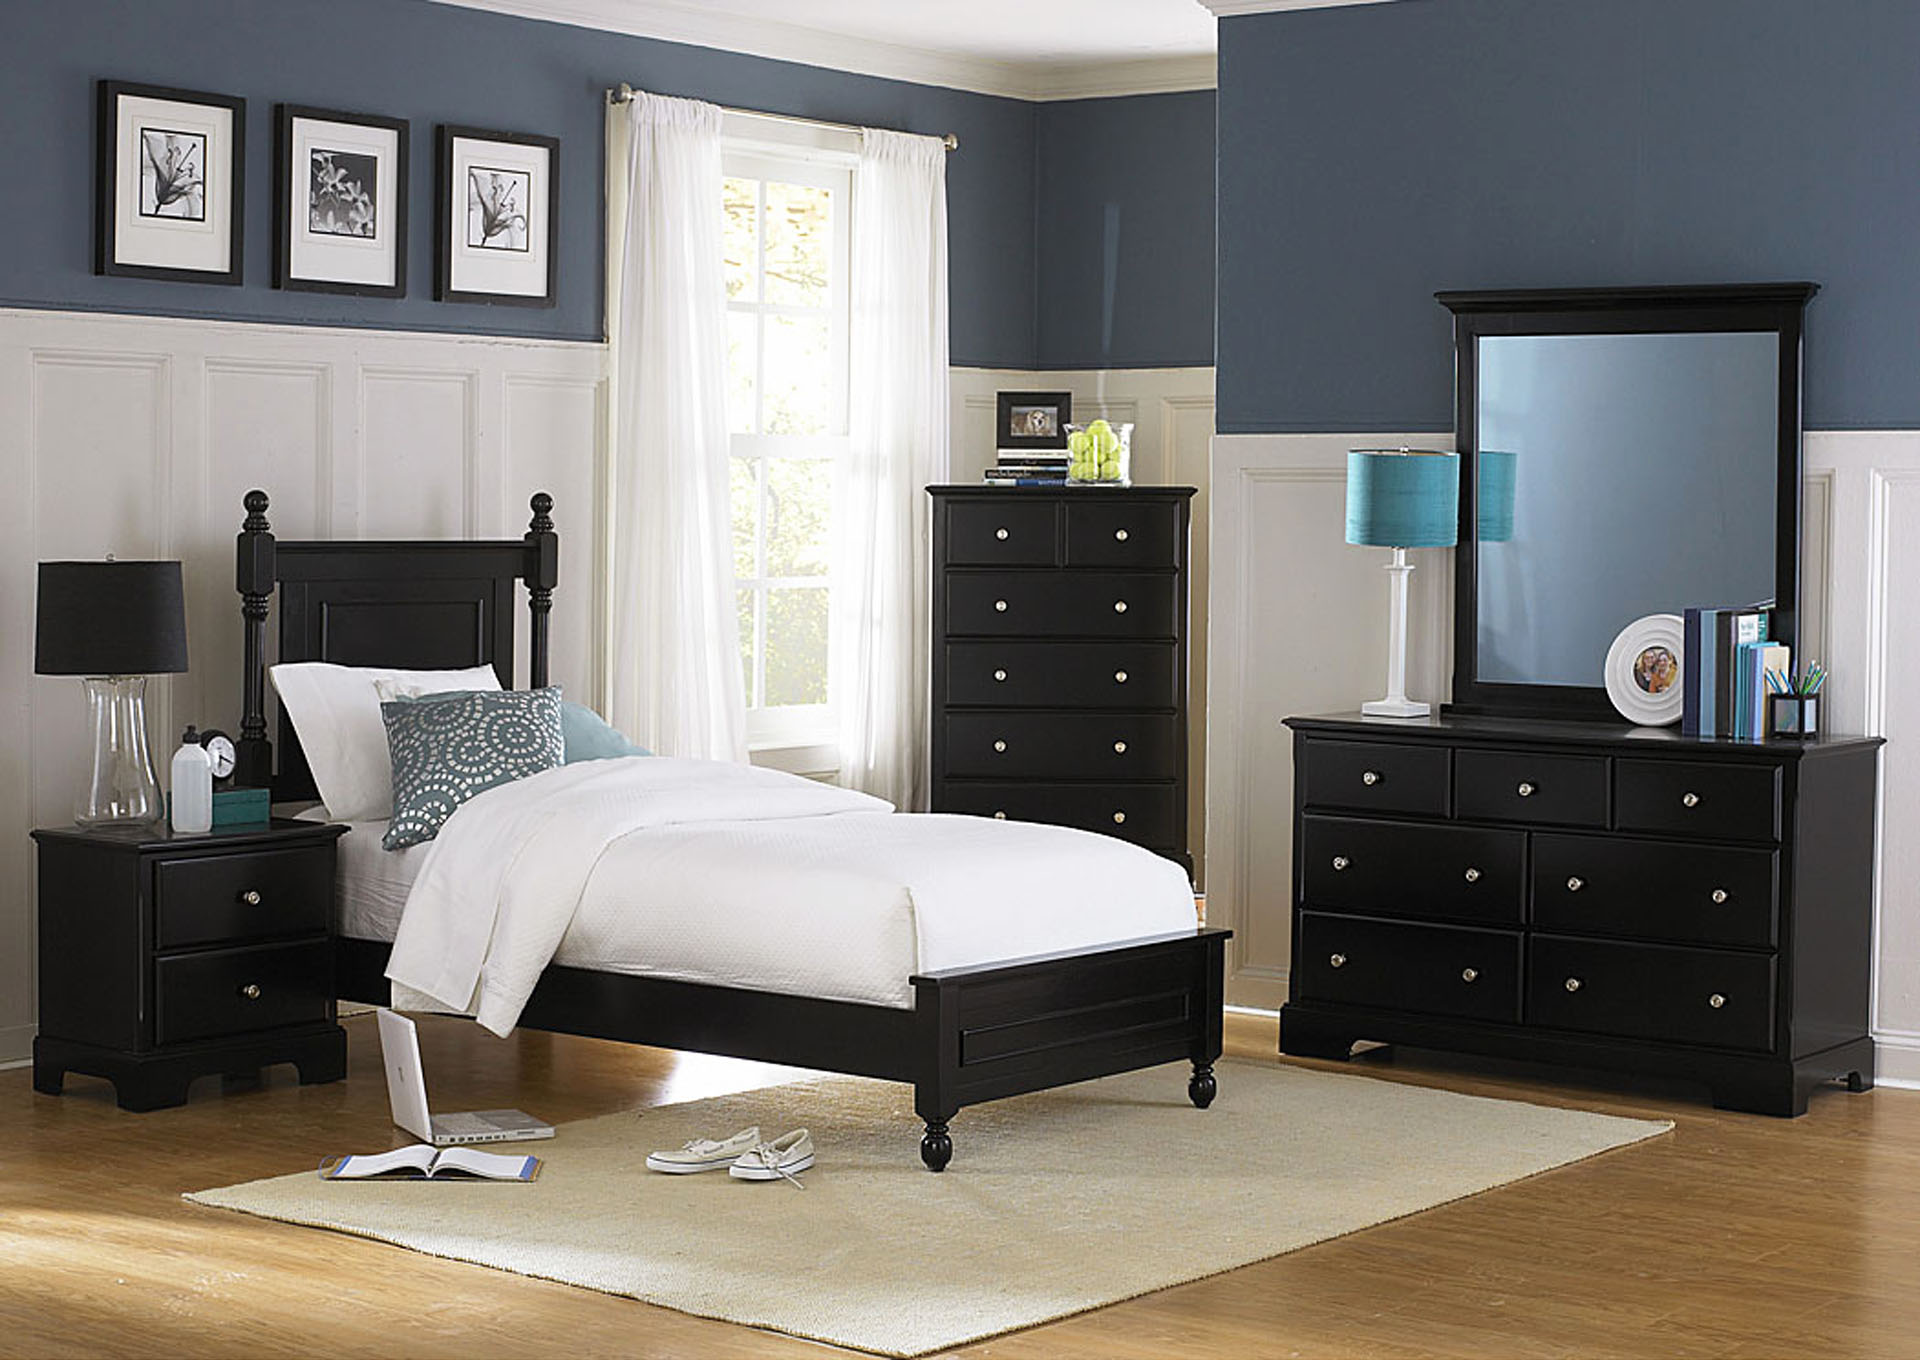 Morelle Black Twin Platform Bed w/ Dresser, Mirror, Drawer Chest and Nightstand,Homelegance